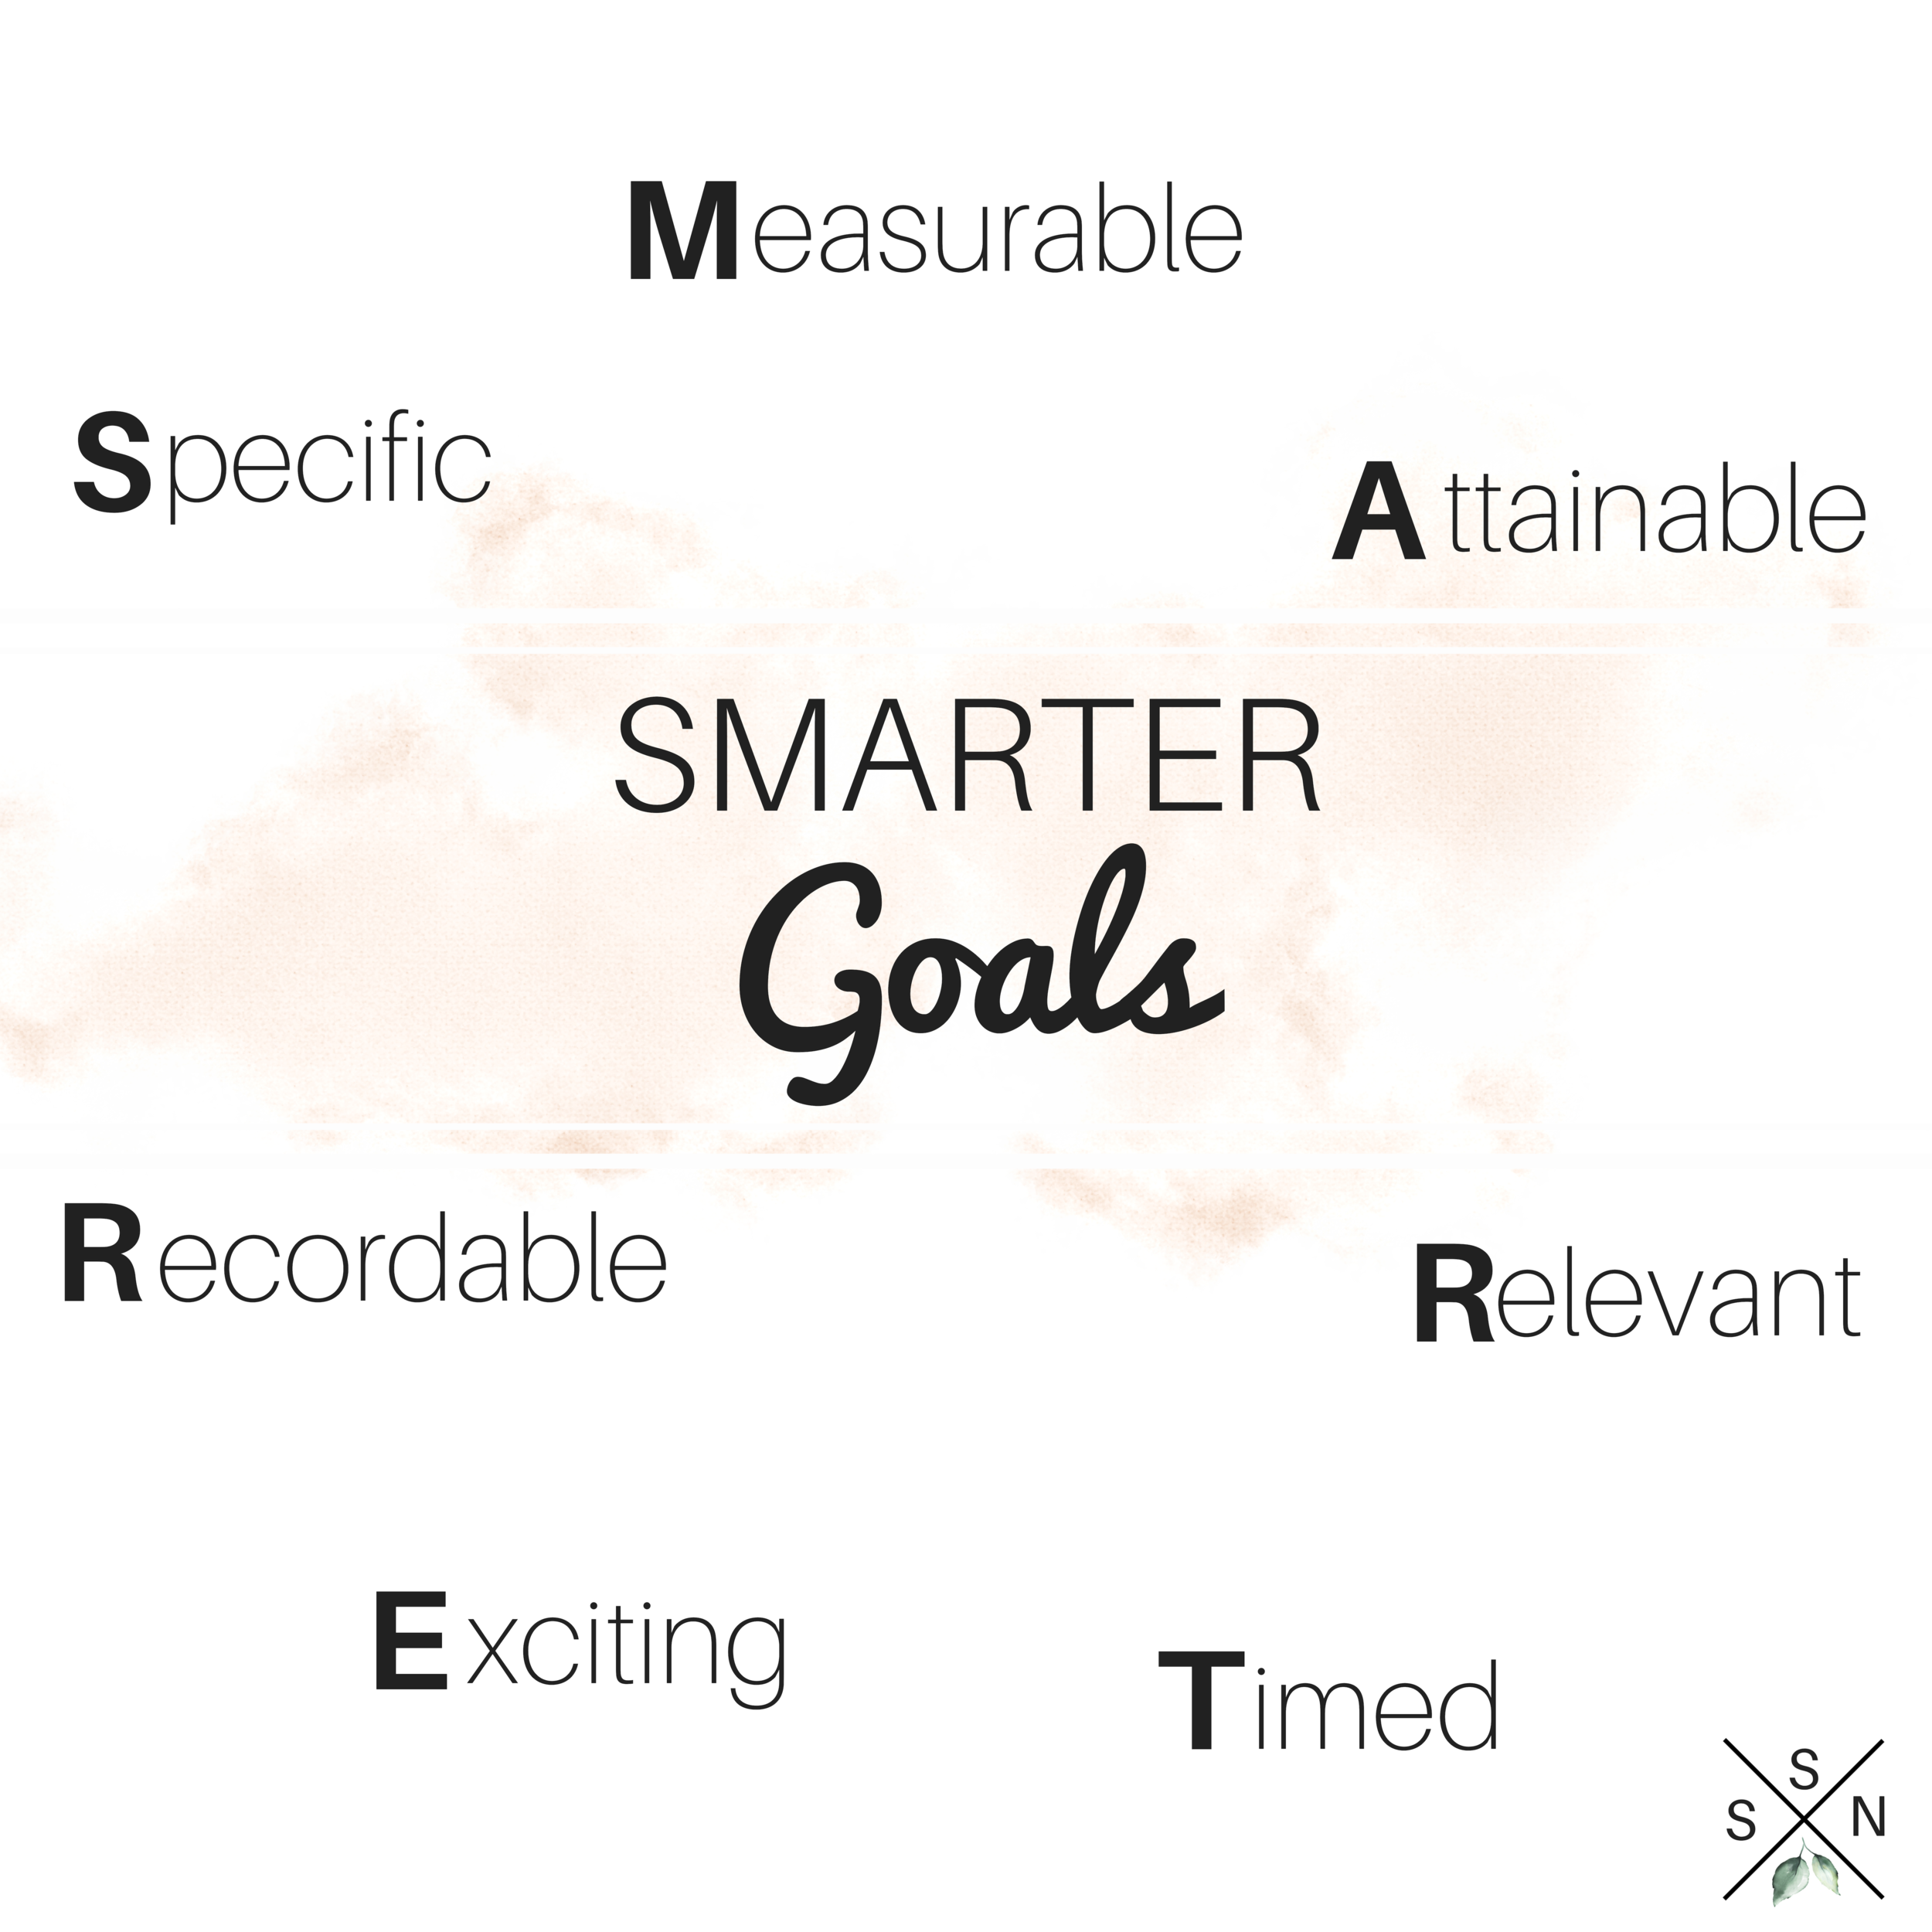 To form a new habit, try setting yourself S.M.A.R.T.E.R goals - People that write down their goals and put them somewhere where they will regularly see them are 60% more likely to accomplish them!